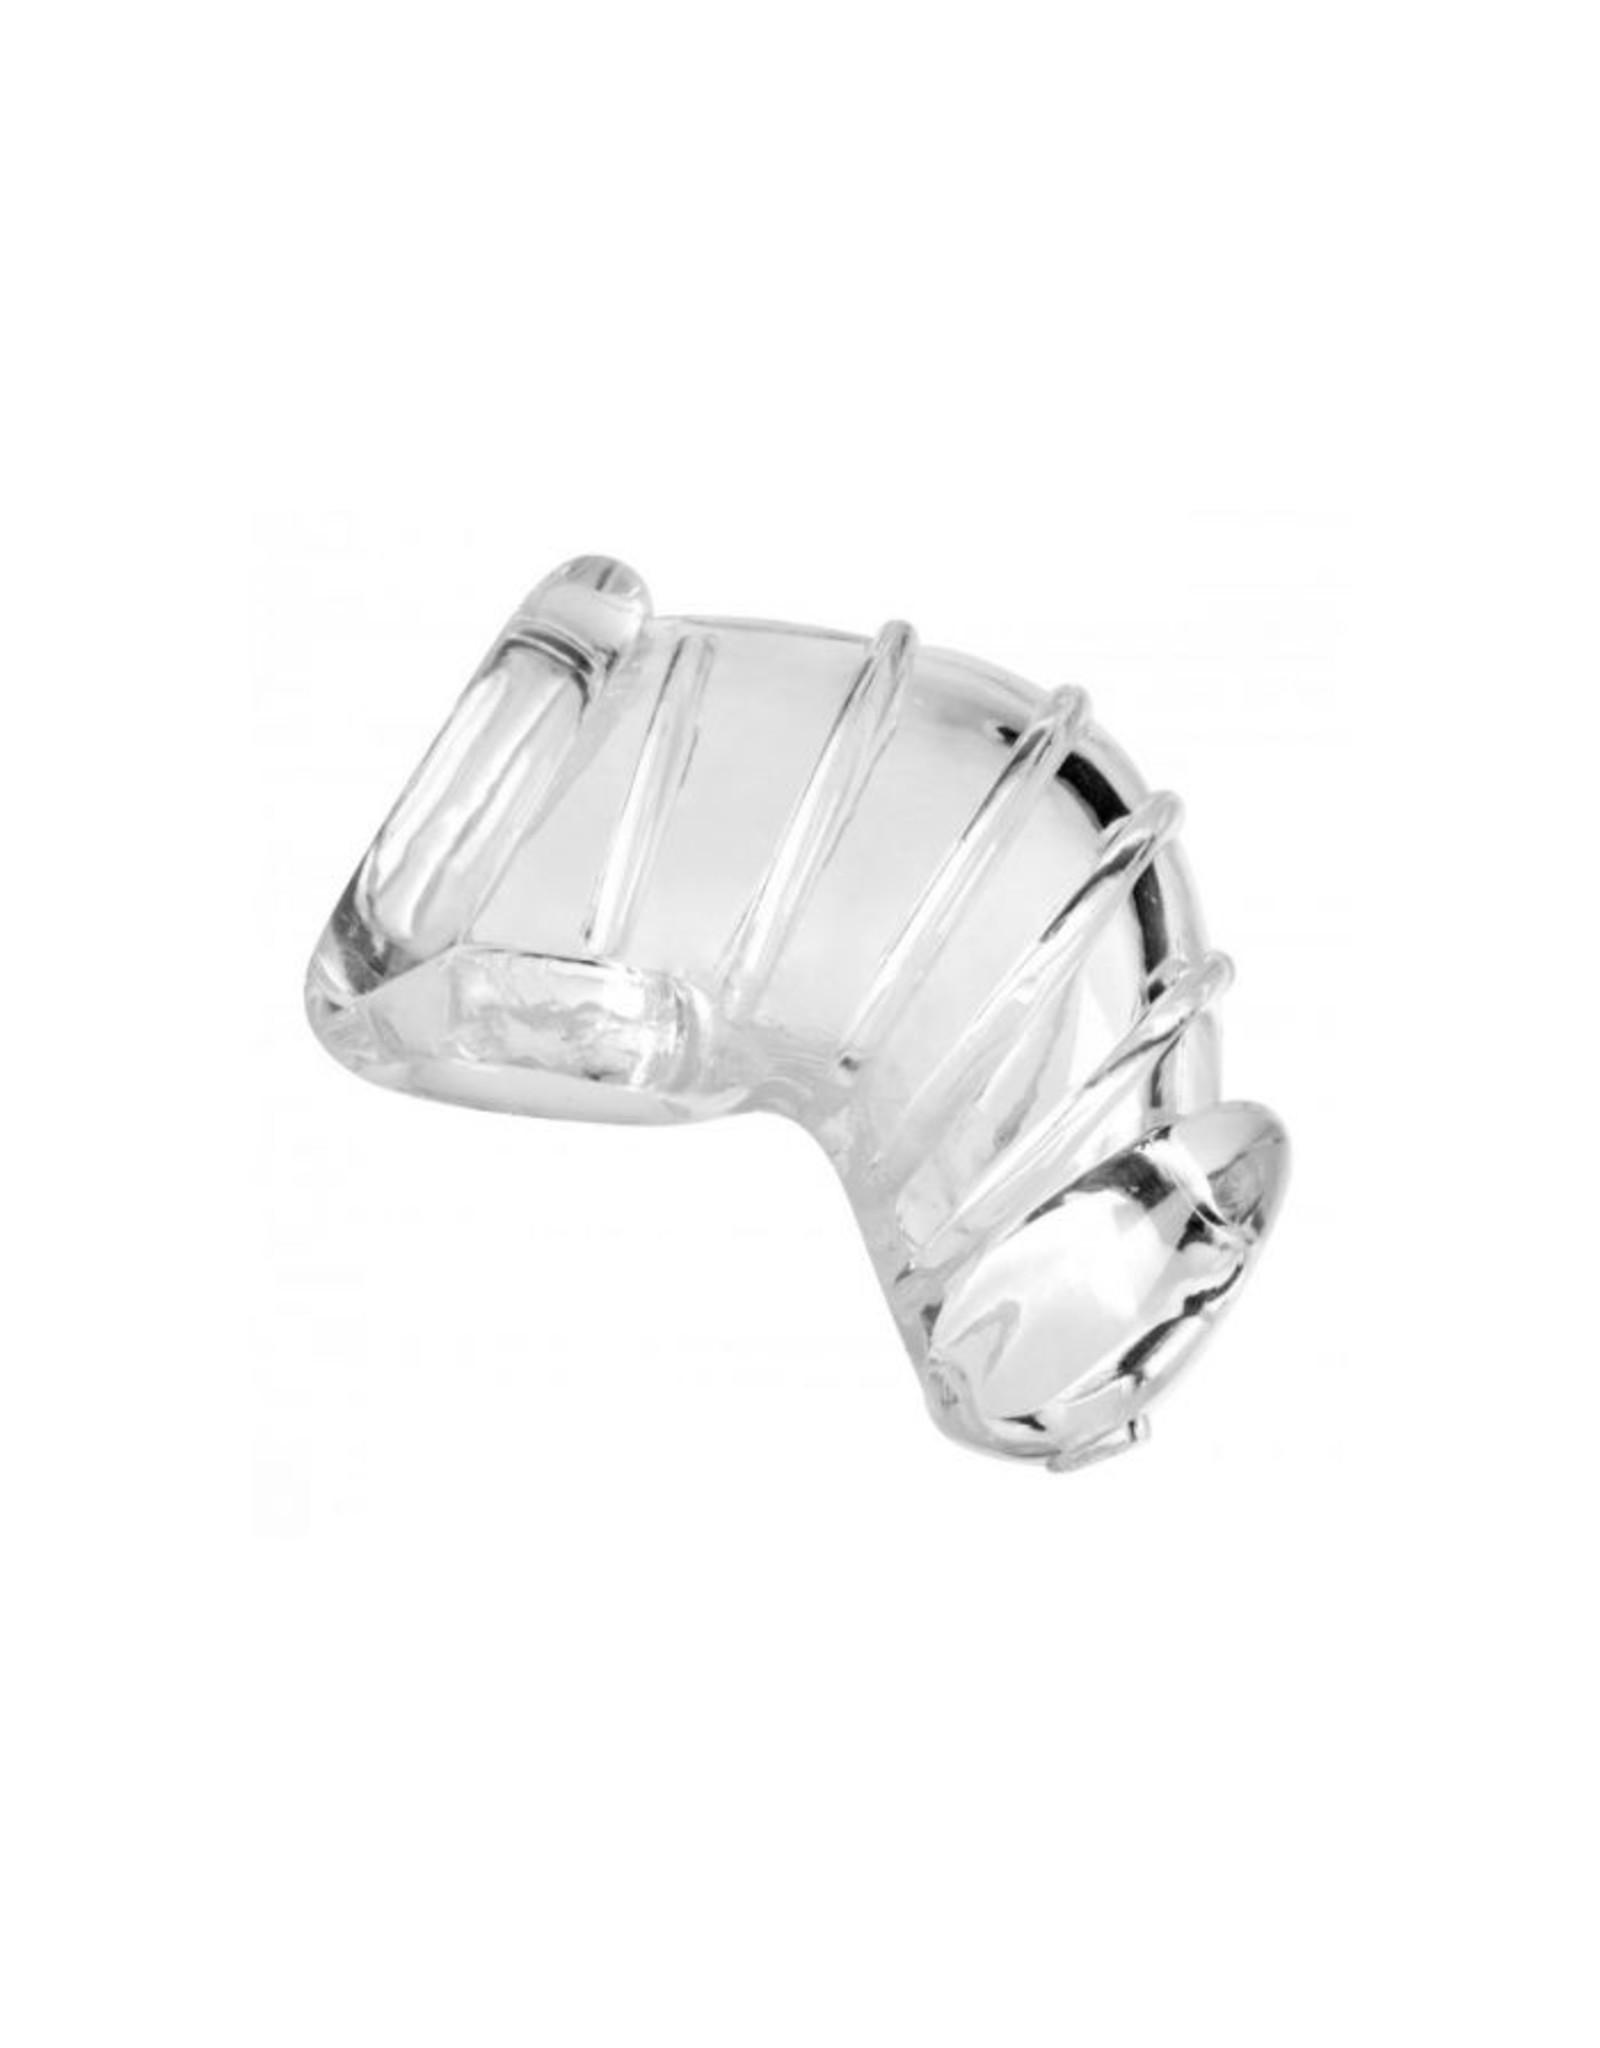 Master series Detained soft body chastity cage transparant